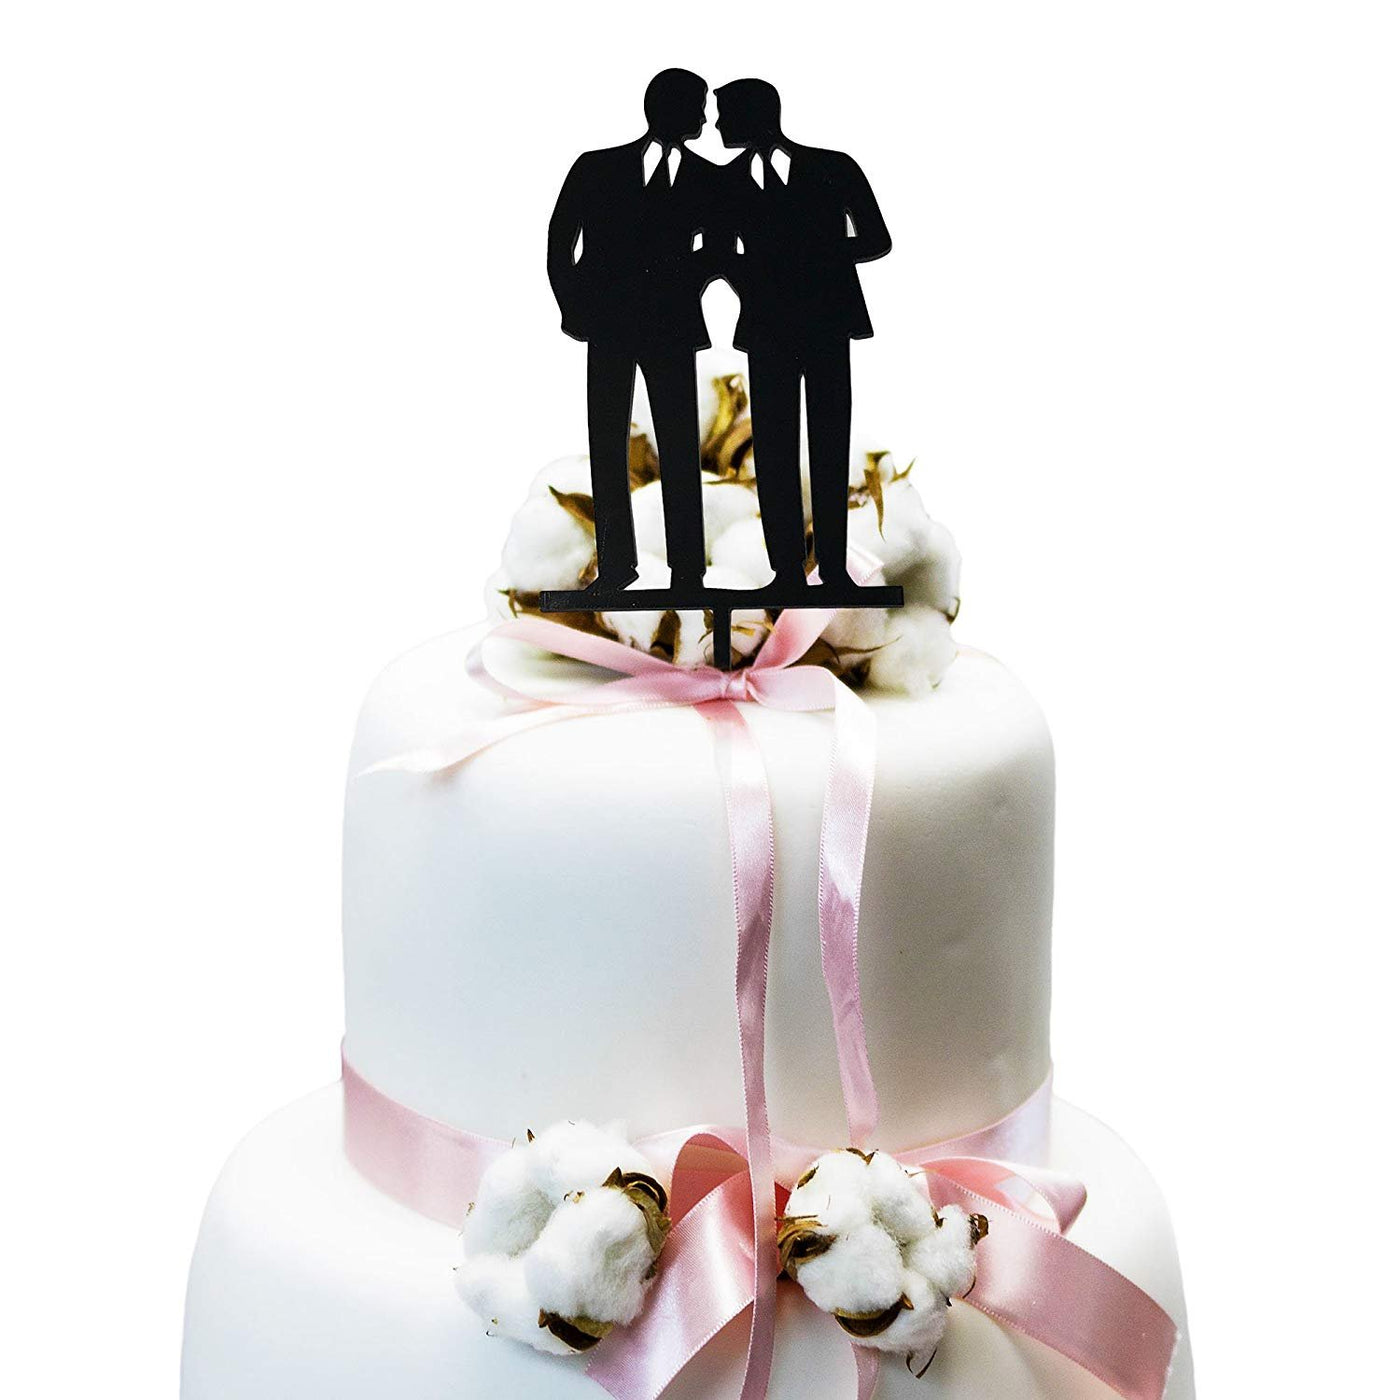 JennyGems - - Groom and Groom - Same Sex Gay Wedding Cake Topper Decoration - Anniversary Cake Topper - LGBT Marriage Union - Mr and Mr